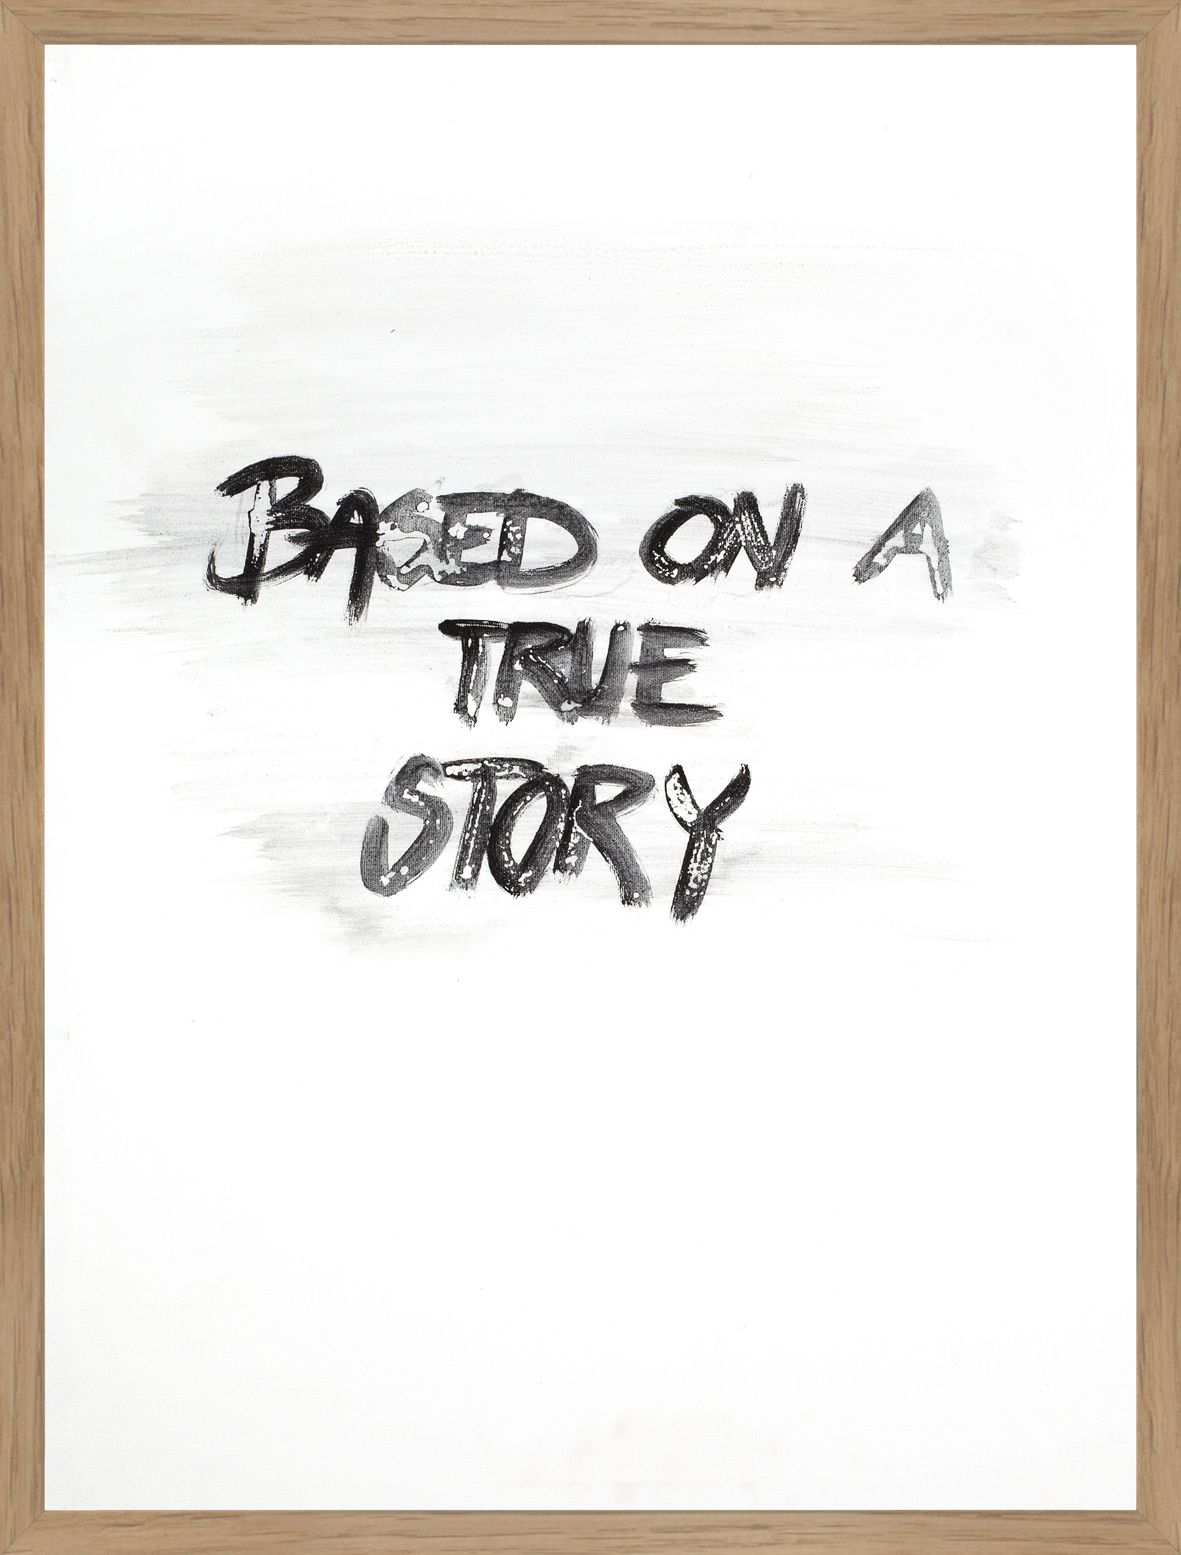 FINE ART POSTER - BASED ON A TRUE STORY, 30 x 40 cm | Art posters